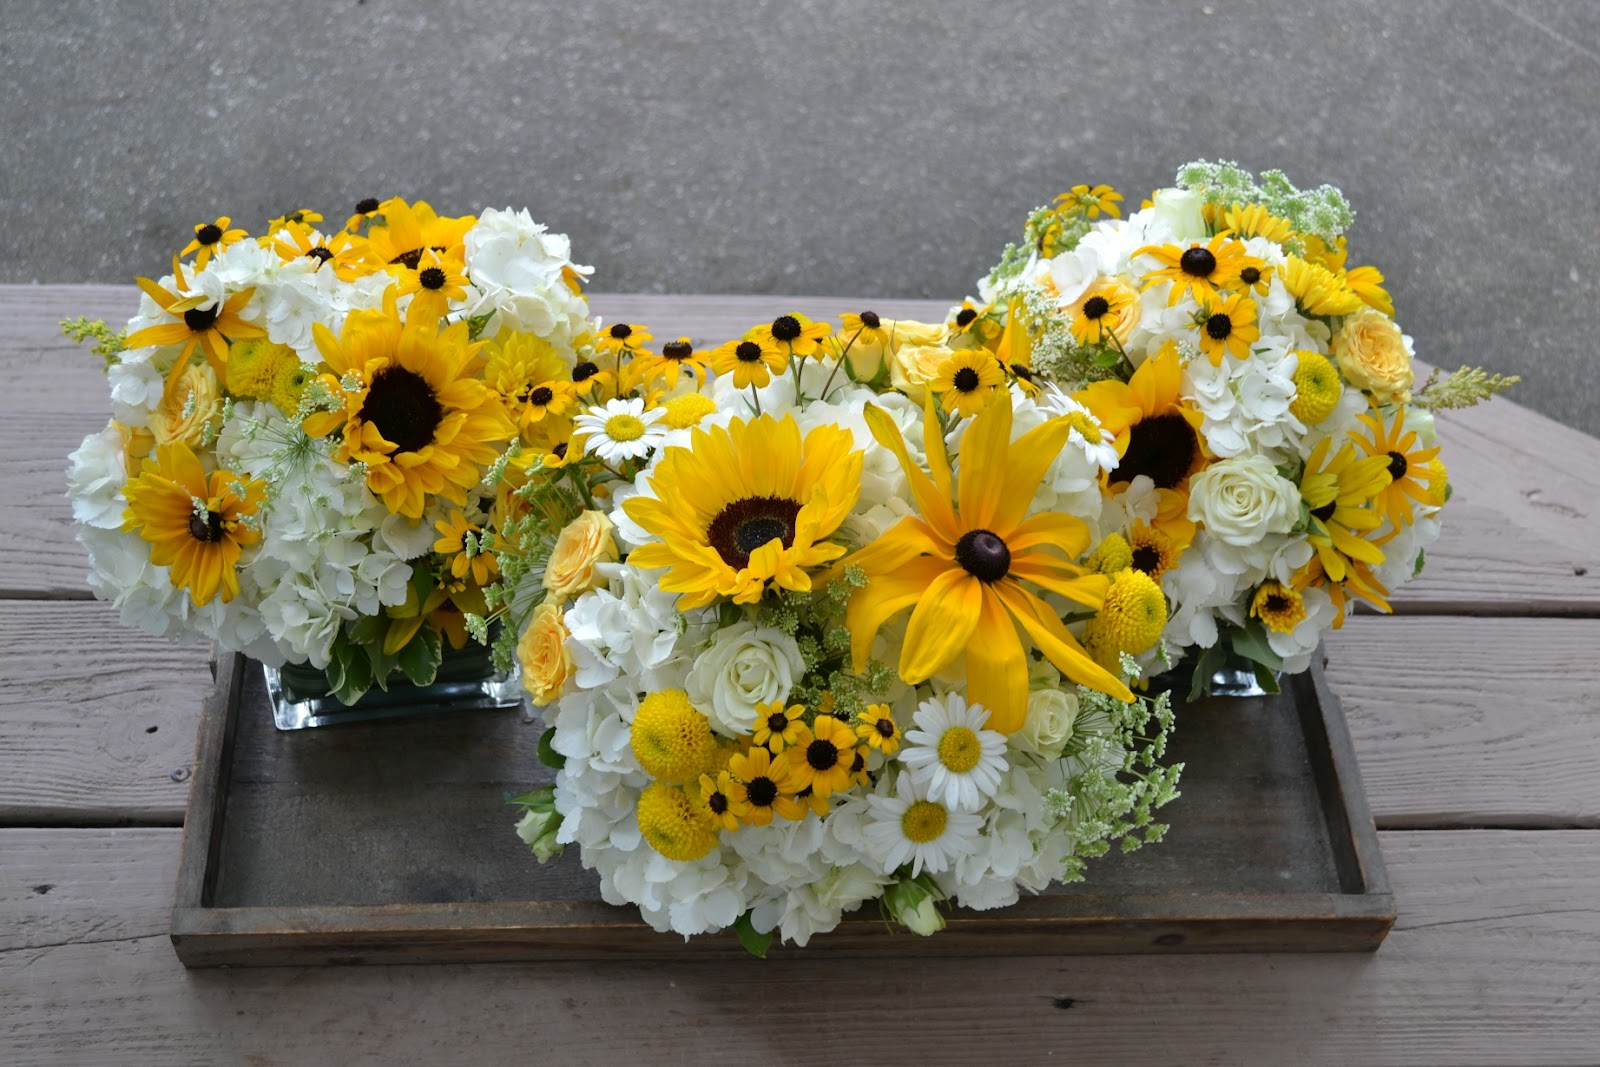 Wedding flowers from springwell sunflowers and black eyed susans more flowers for the gorgeous wedding cake created by jennys cupcakery izmirmasajfo